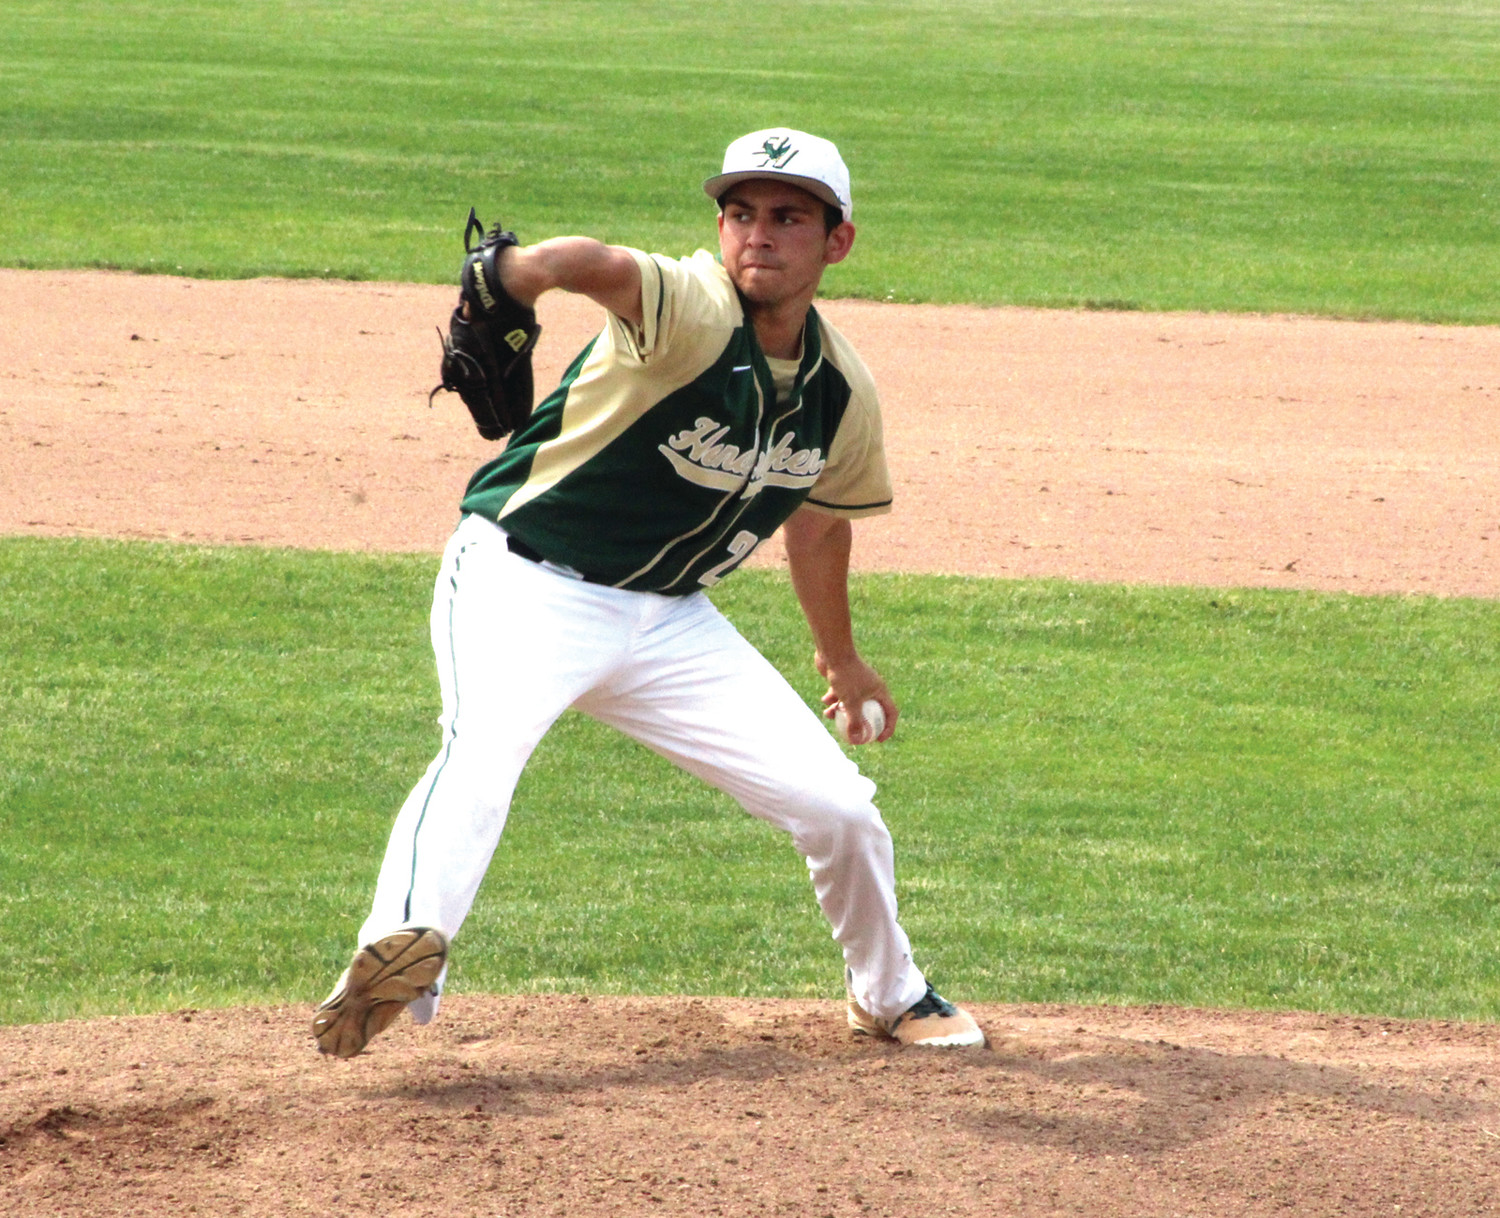 ON THE HILL: Bishop Hendricken pitcher Kyle Marrapese delivers a pitch against Coventry.